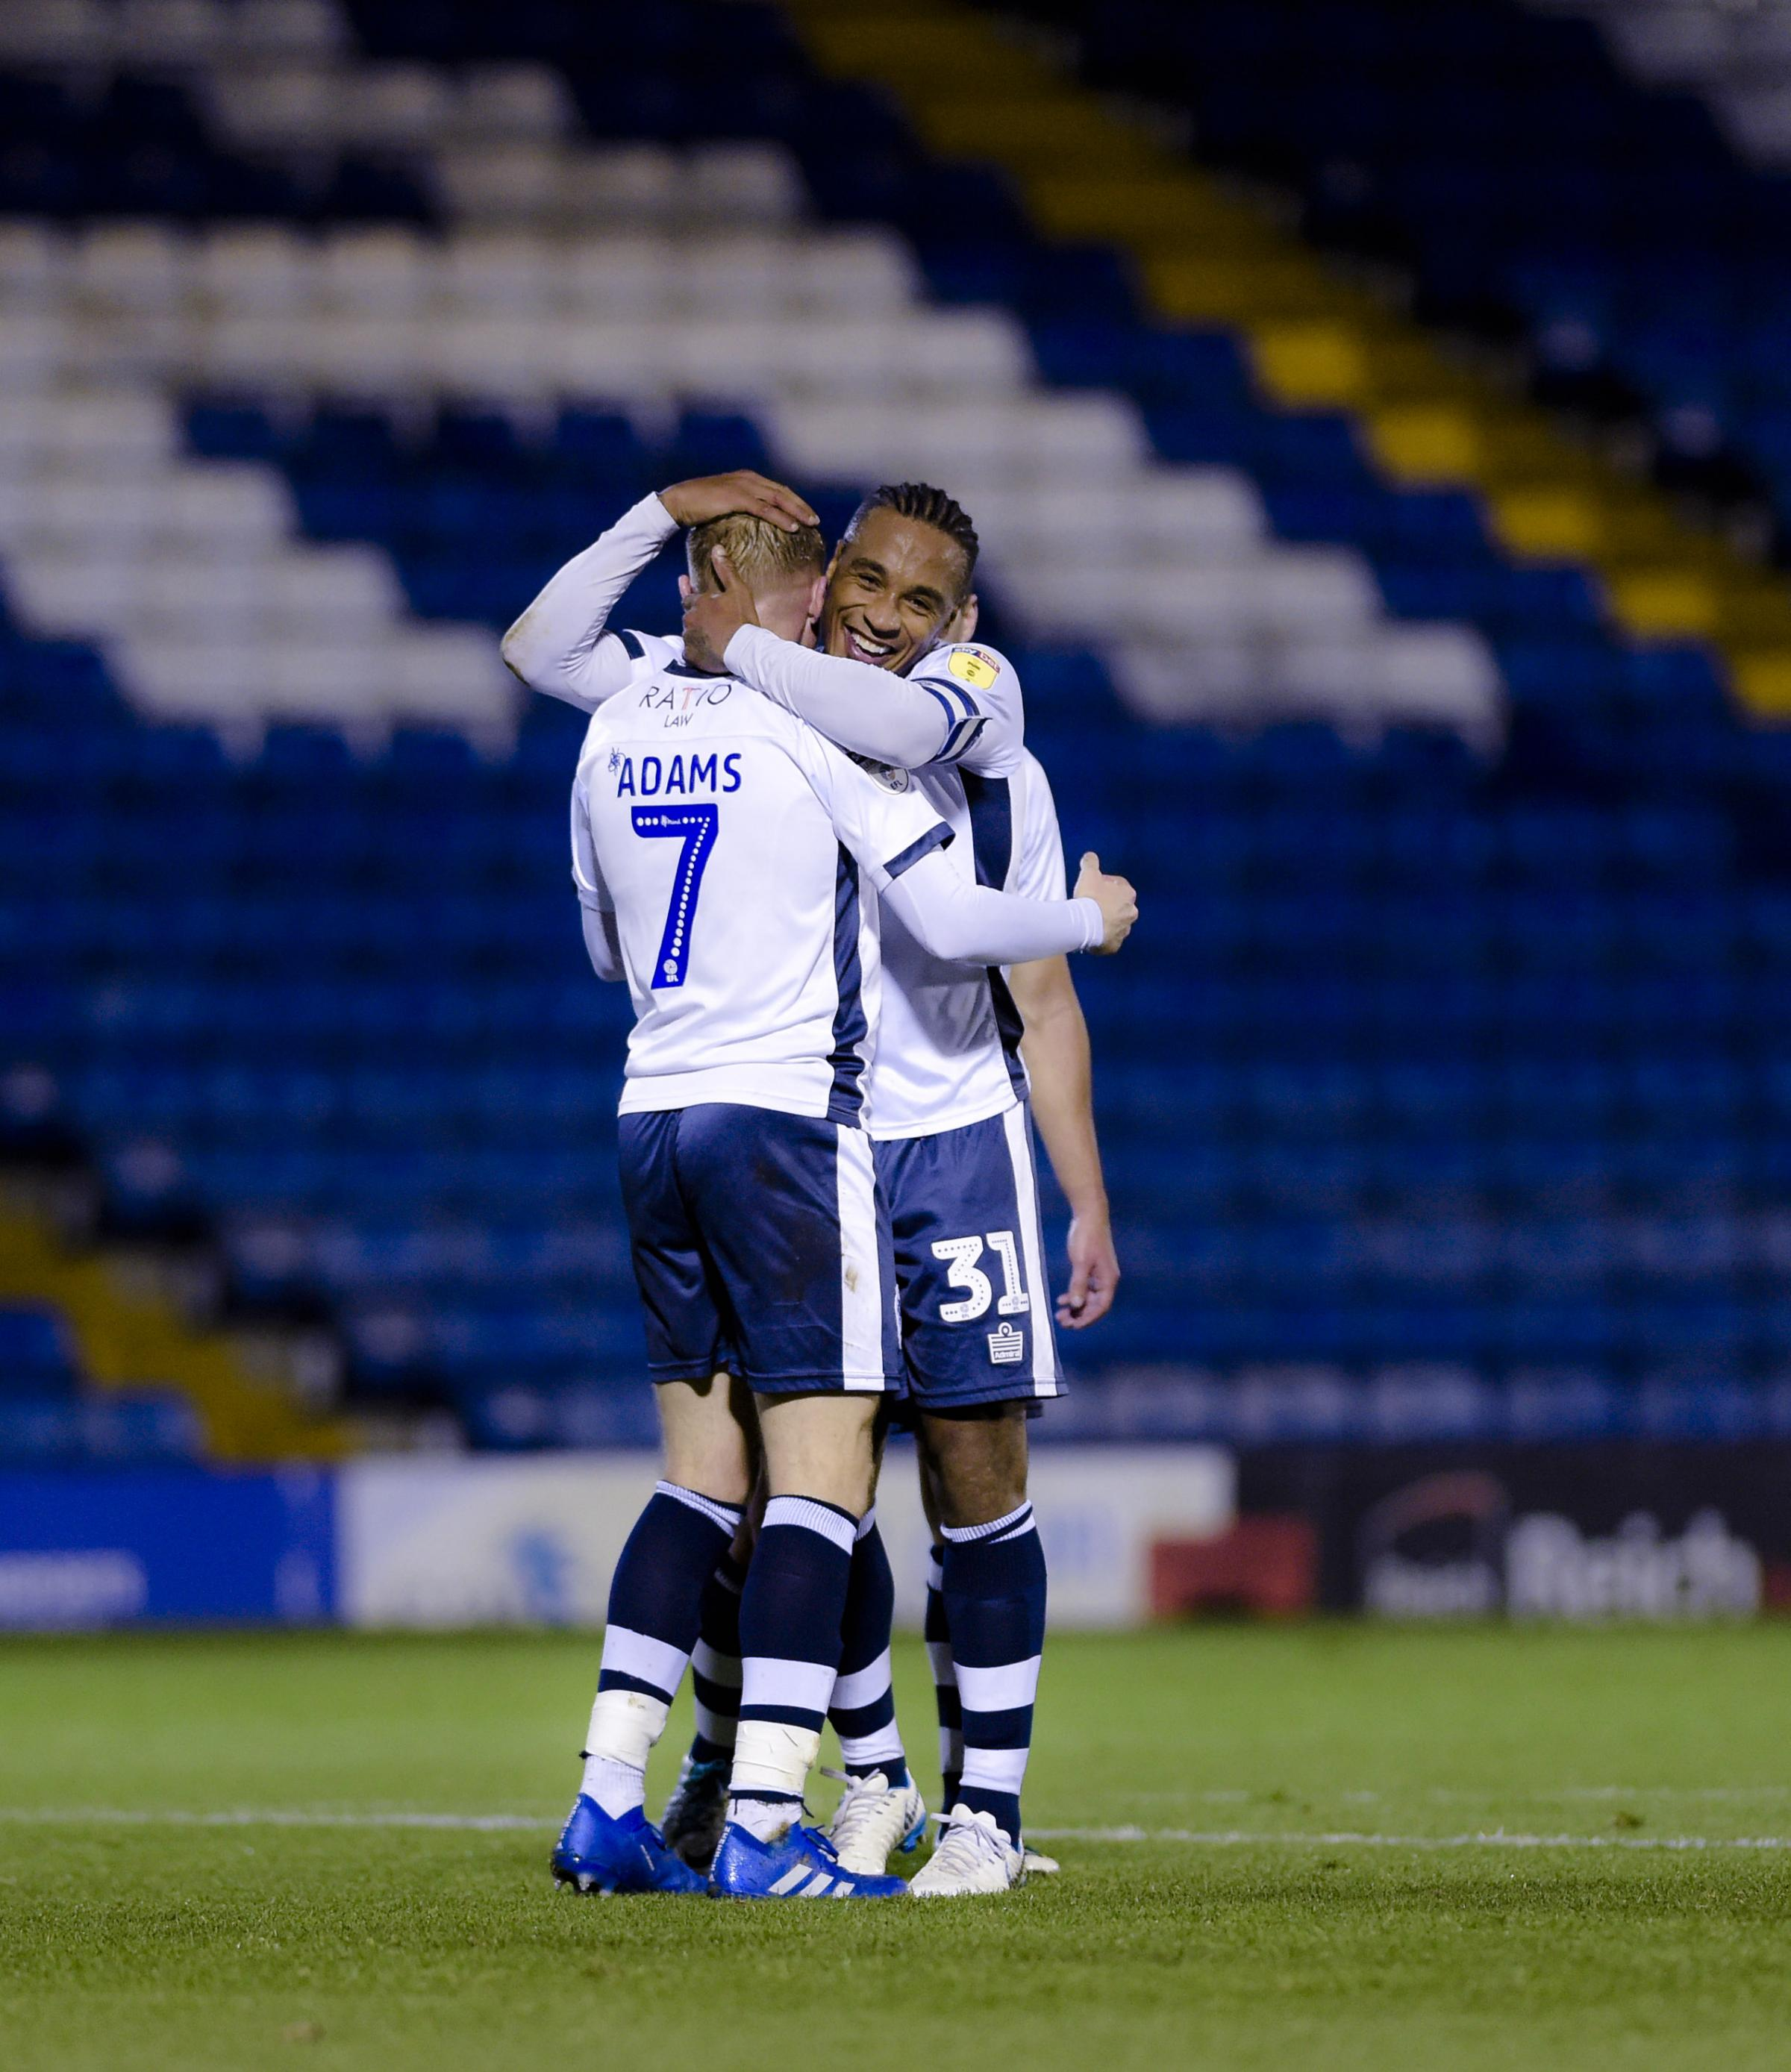 Midfielder Nicky Adams celebrates with Neil Danns after making it 3-1 to Bury during the Checkatrade Trophy match between Bury FC and Fleetwood Town. Picture by Andy Whitehead